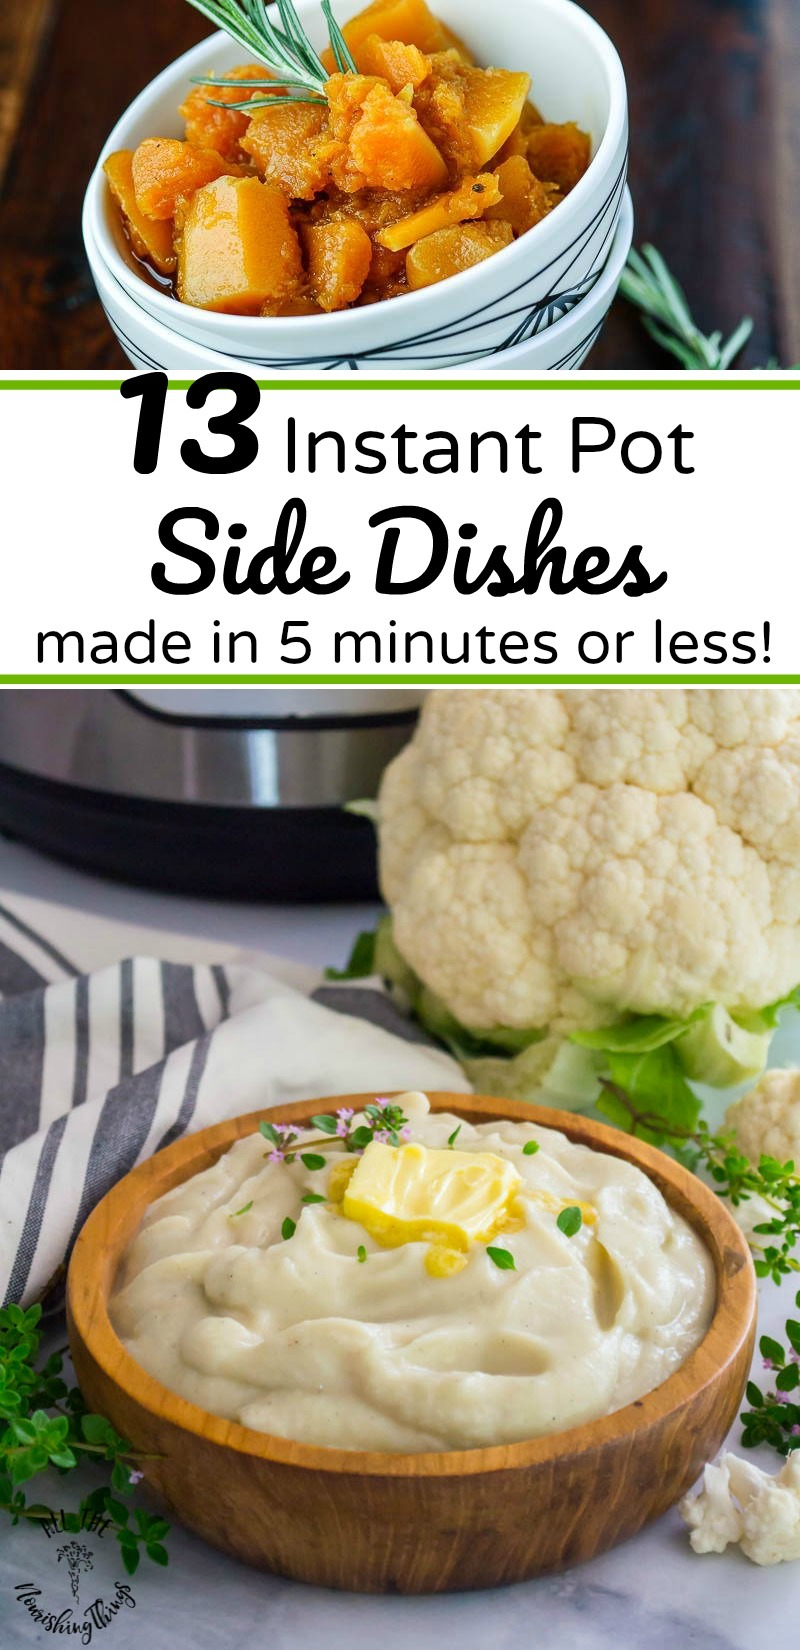 13 instant pot side dishes made in 5 minutes or less